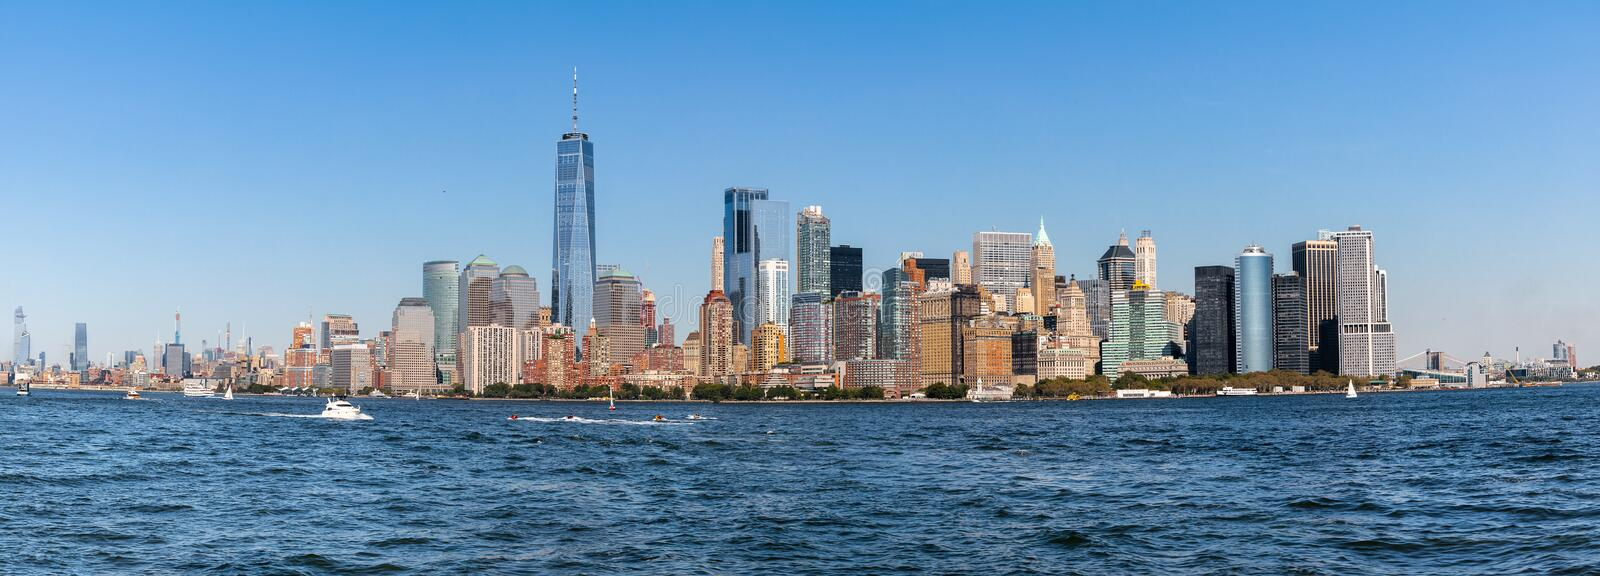 New York Skyline Cityscape showing several prominent buildings and hotels under a blue sky royalty free stock photography